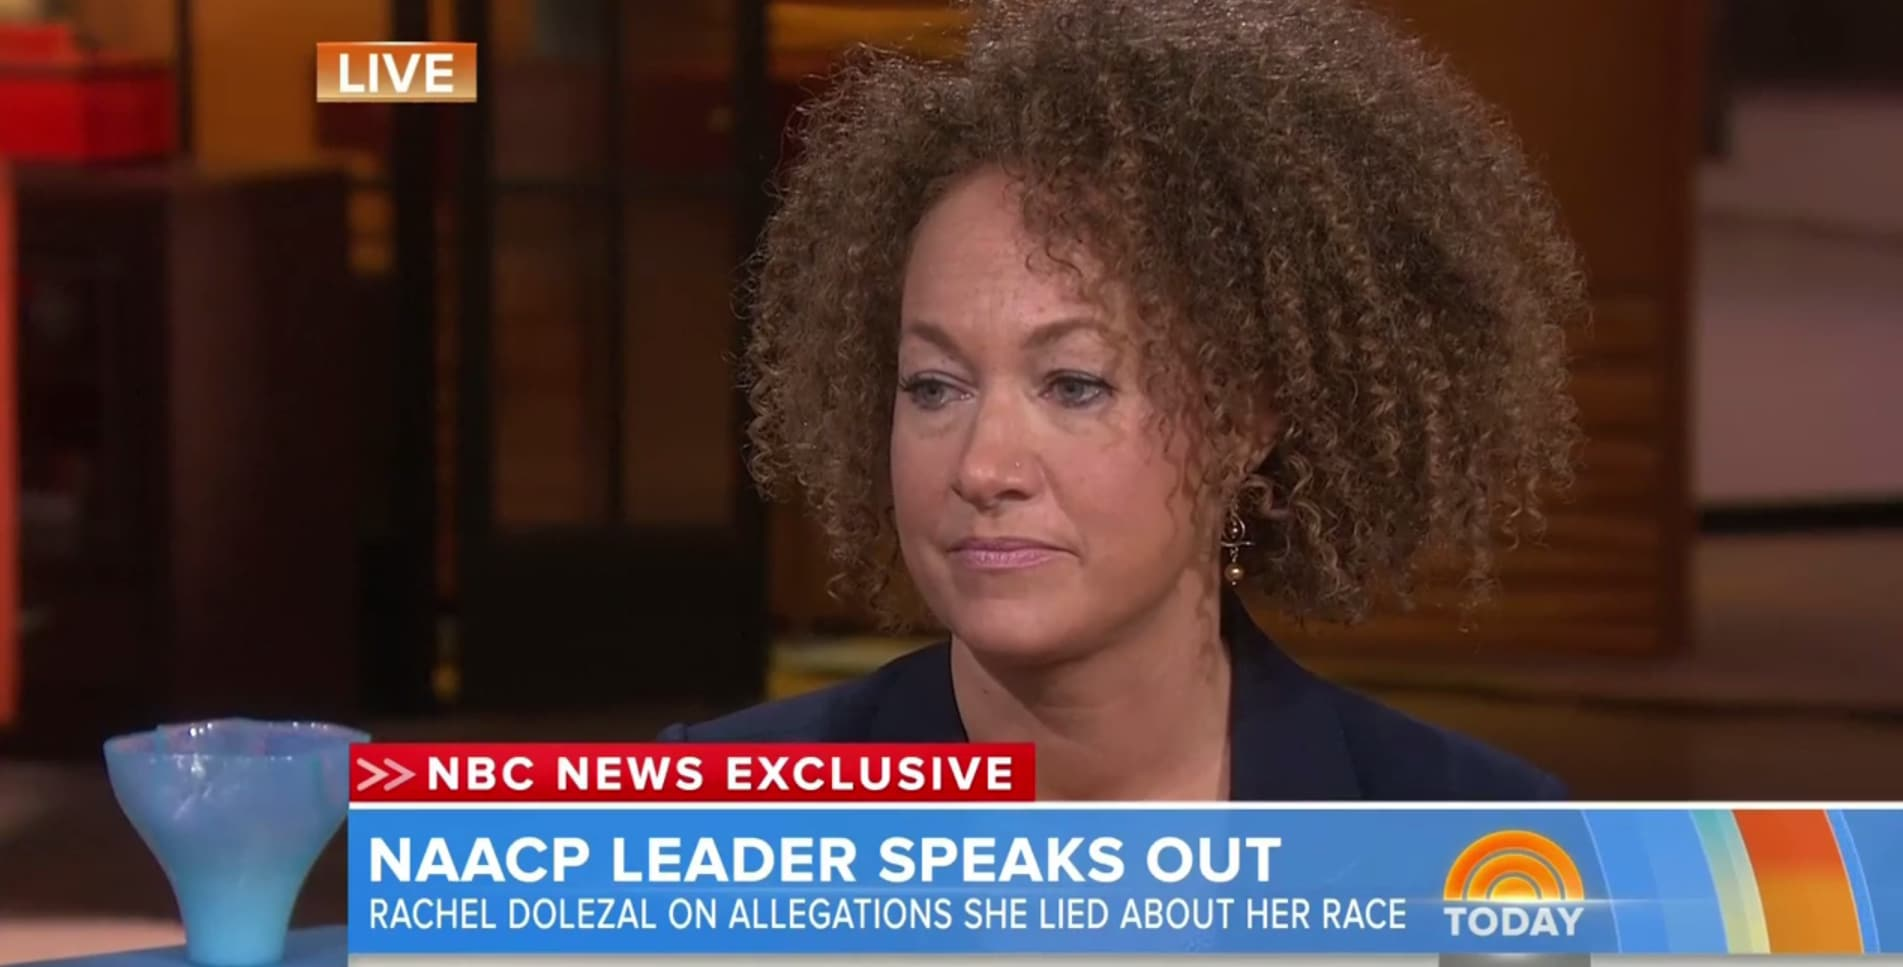 Rachel Dolezal, ex-NAACP leader: 'Nothing about being white describes who I am' - The Washington Post